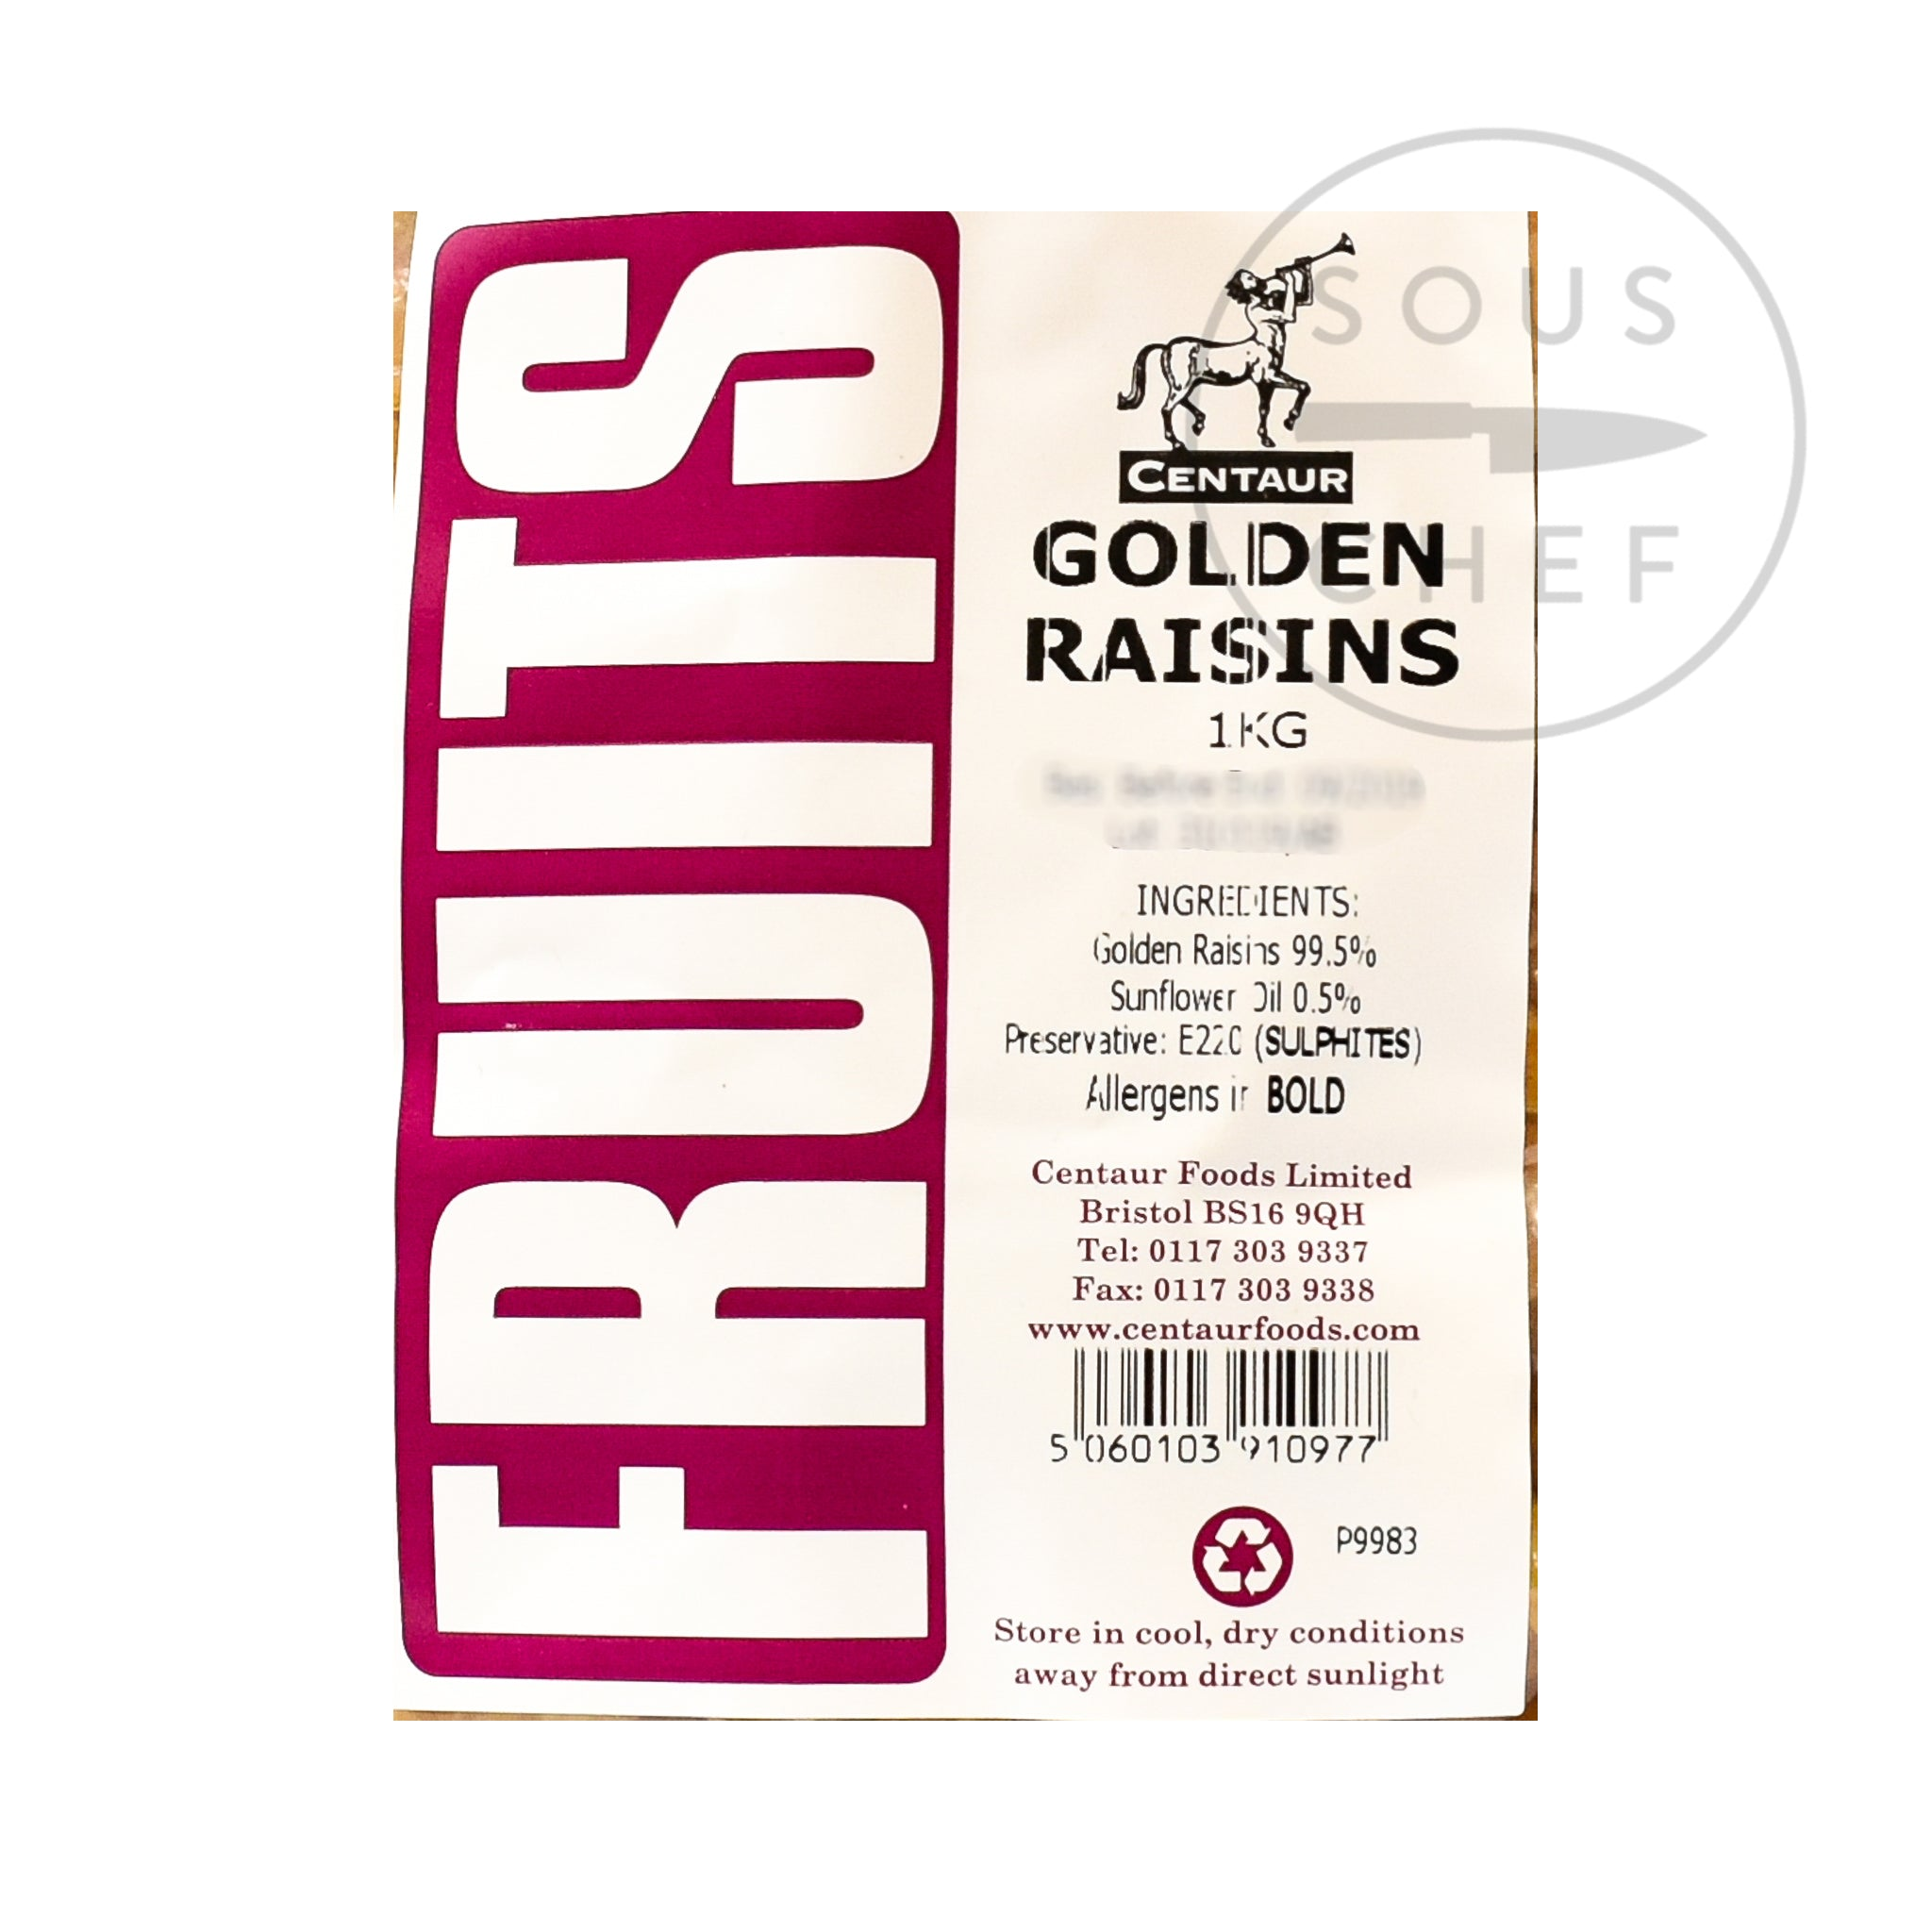 Golden Raisins 1kg ingredients